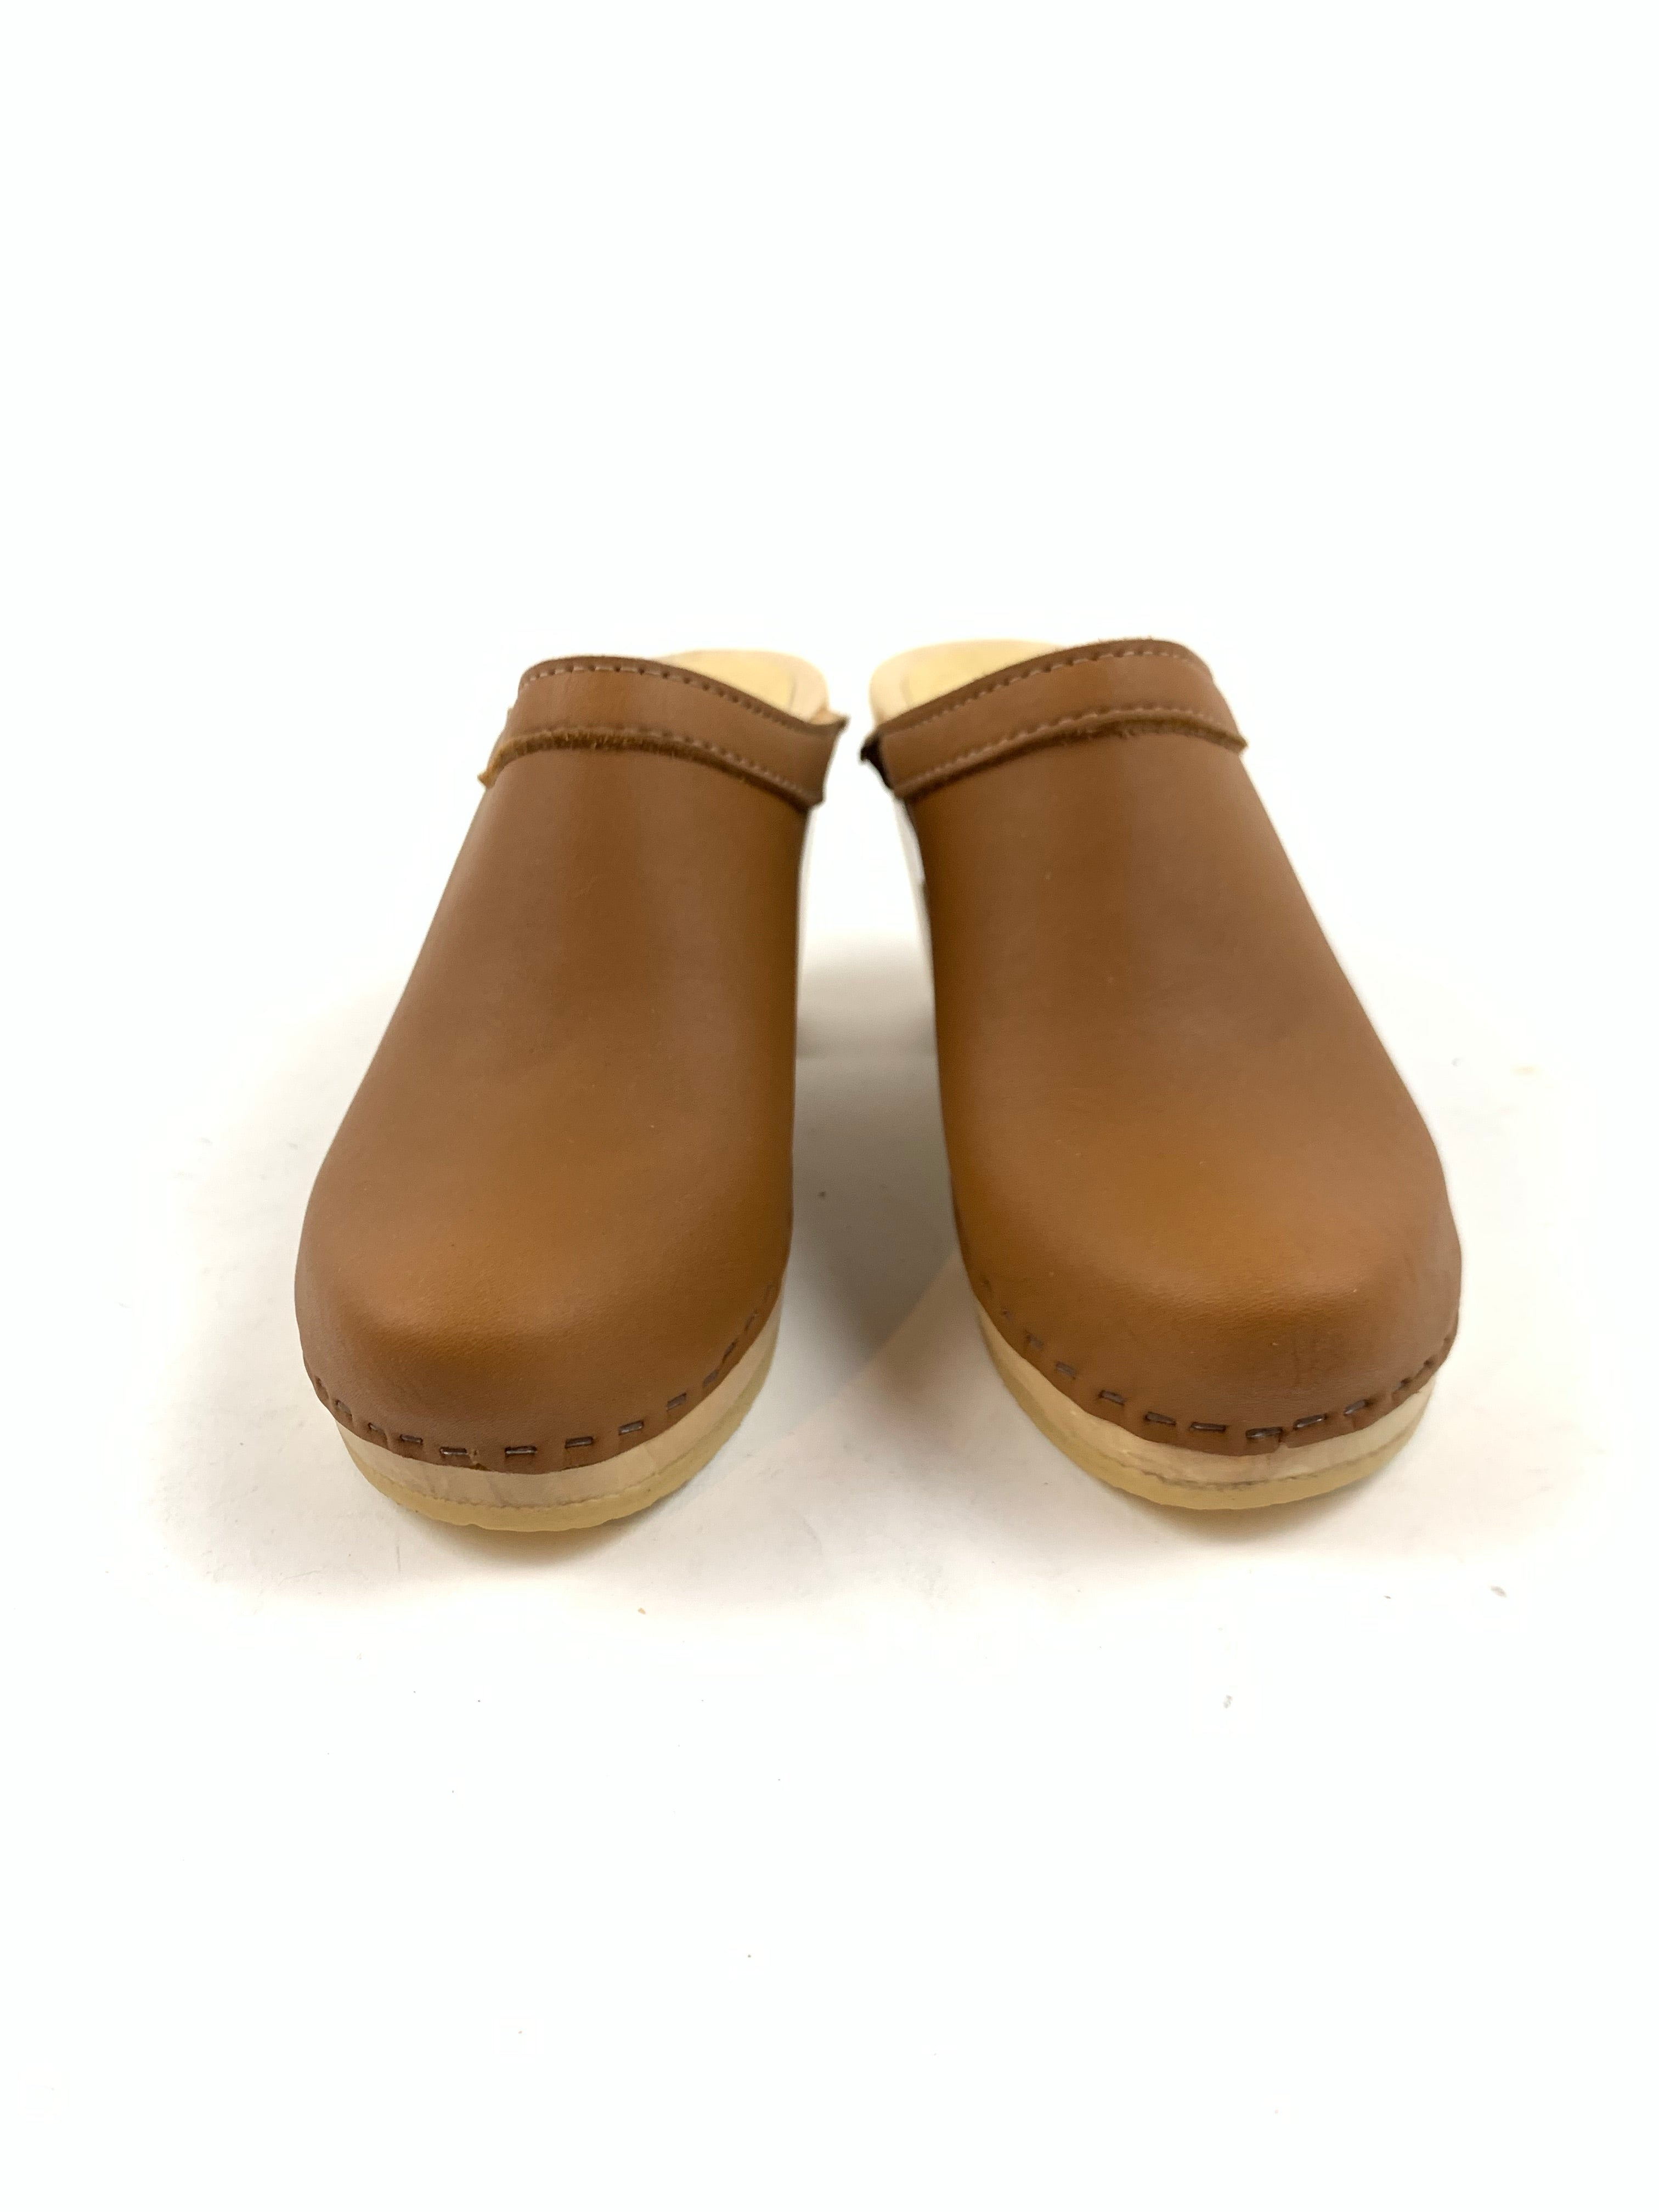 No. 6 - Old School Clog on High Heel (Palomino)